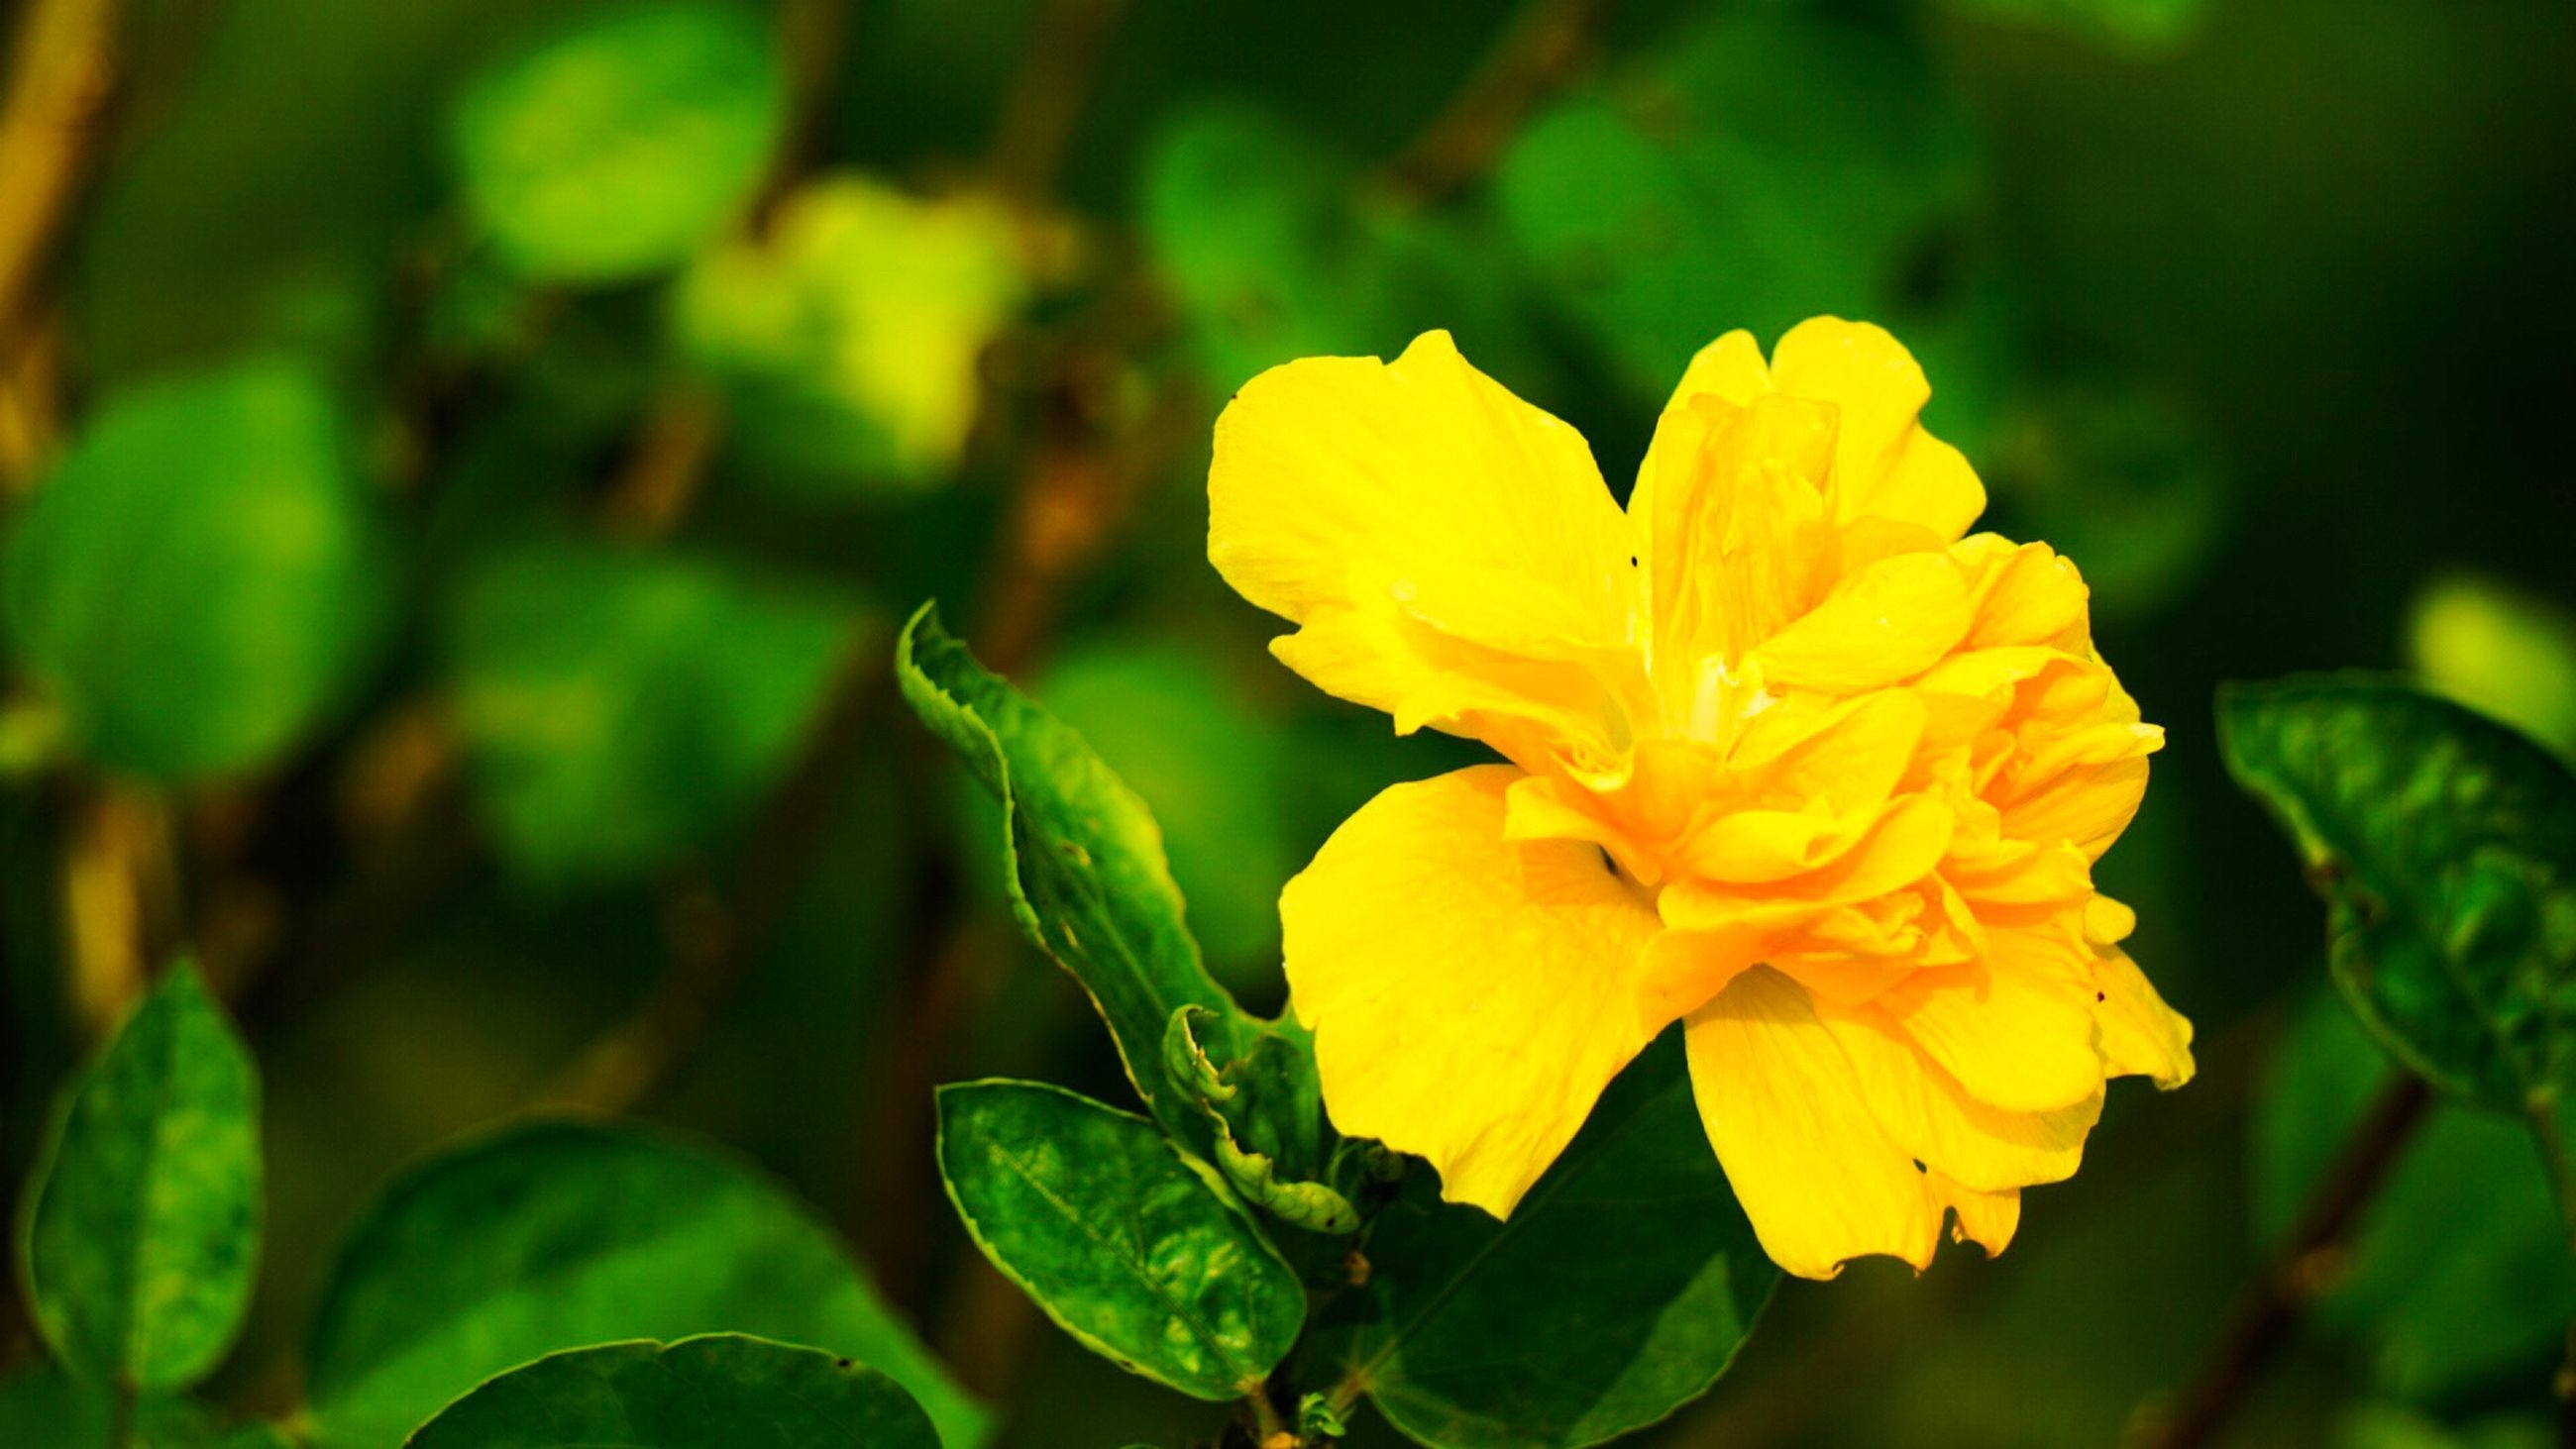 flower, freshness, petal, yellow, fragility, flower head, close-up, vibrant color, stem, springtime, growth, blossom, beauty in nature, in bloom, single flower, focus on foreground, softness, nature, stamen, selective focus, plant, botany, outdoors, day, yellow color, bloom, green color, no people, sepal